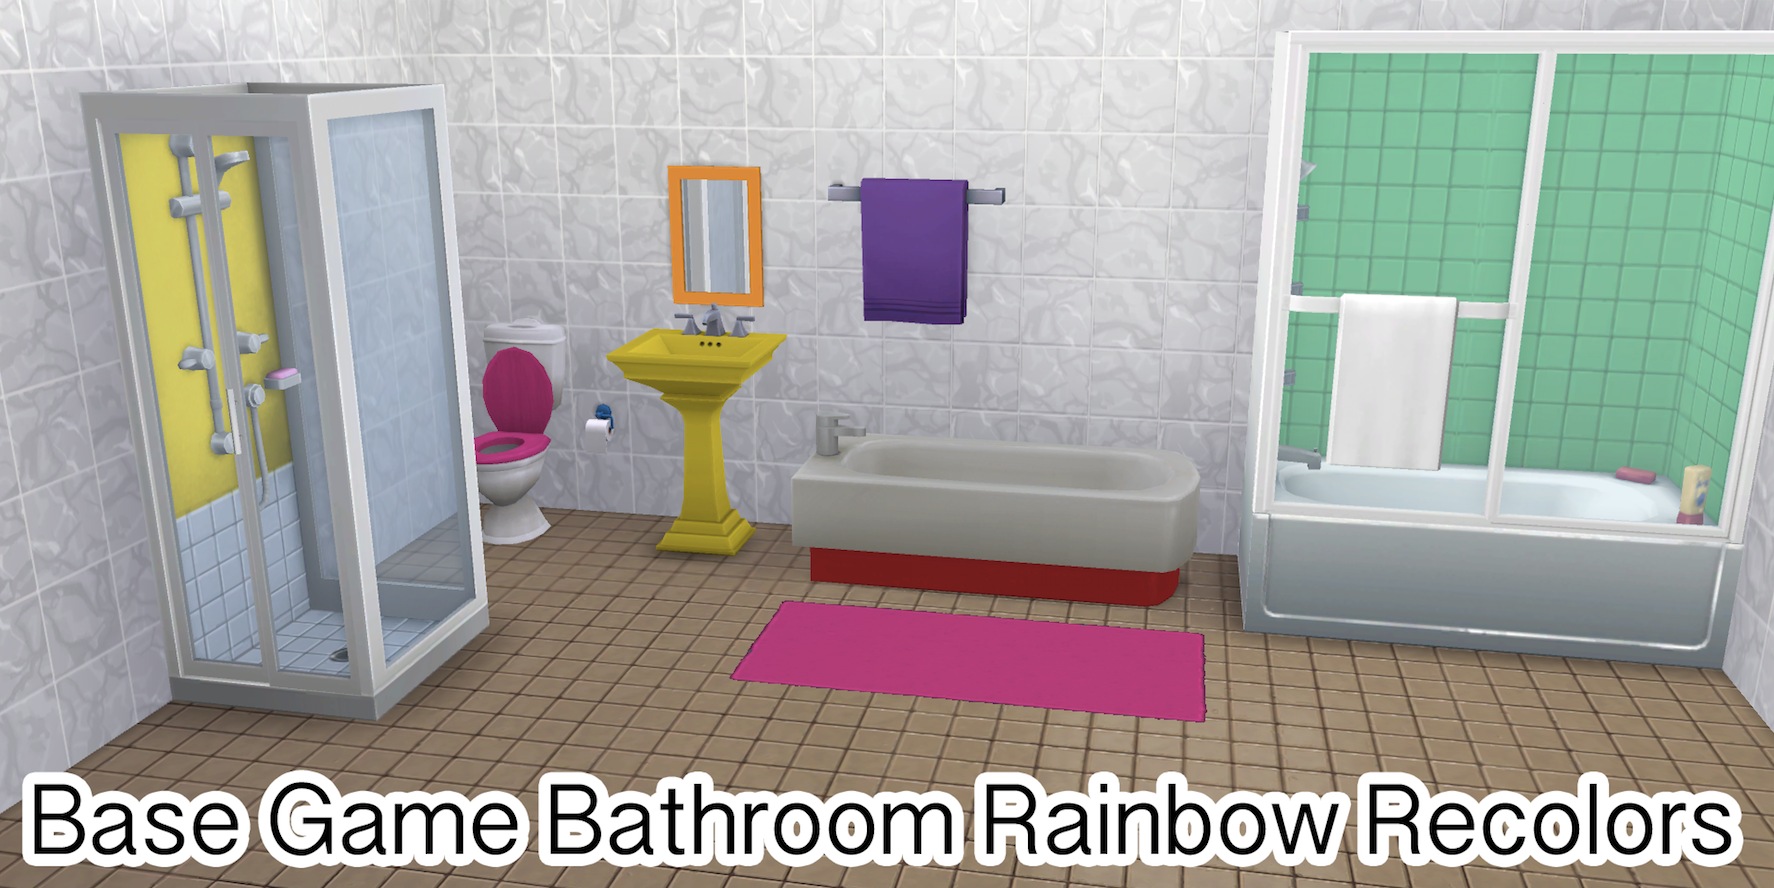 Base Game Bathroom Rainbow Recolors Rainbowsparklessims Rainbow Bathroom Recolor Bathroom